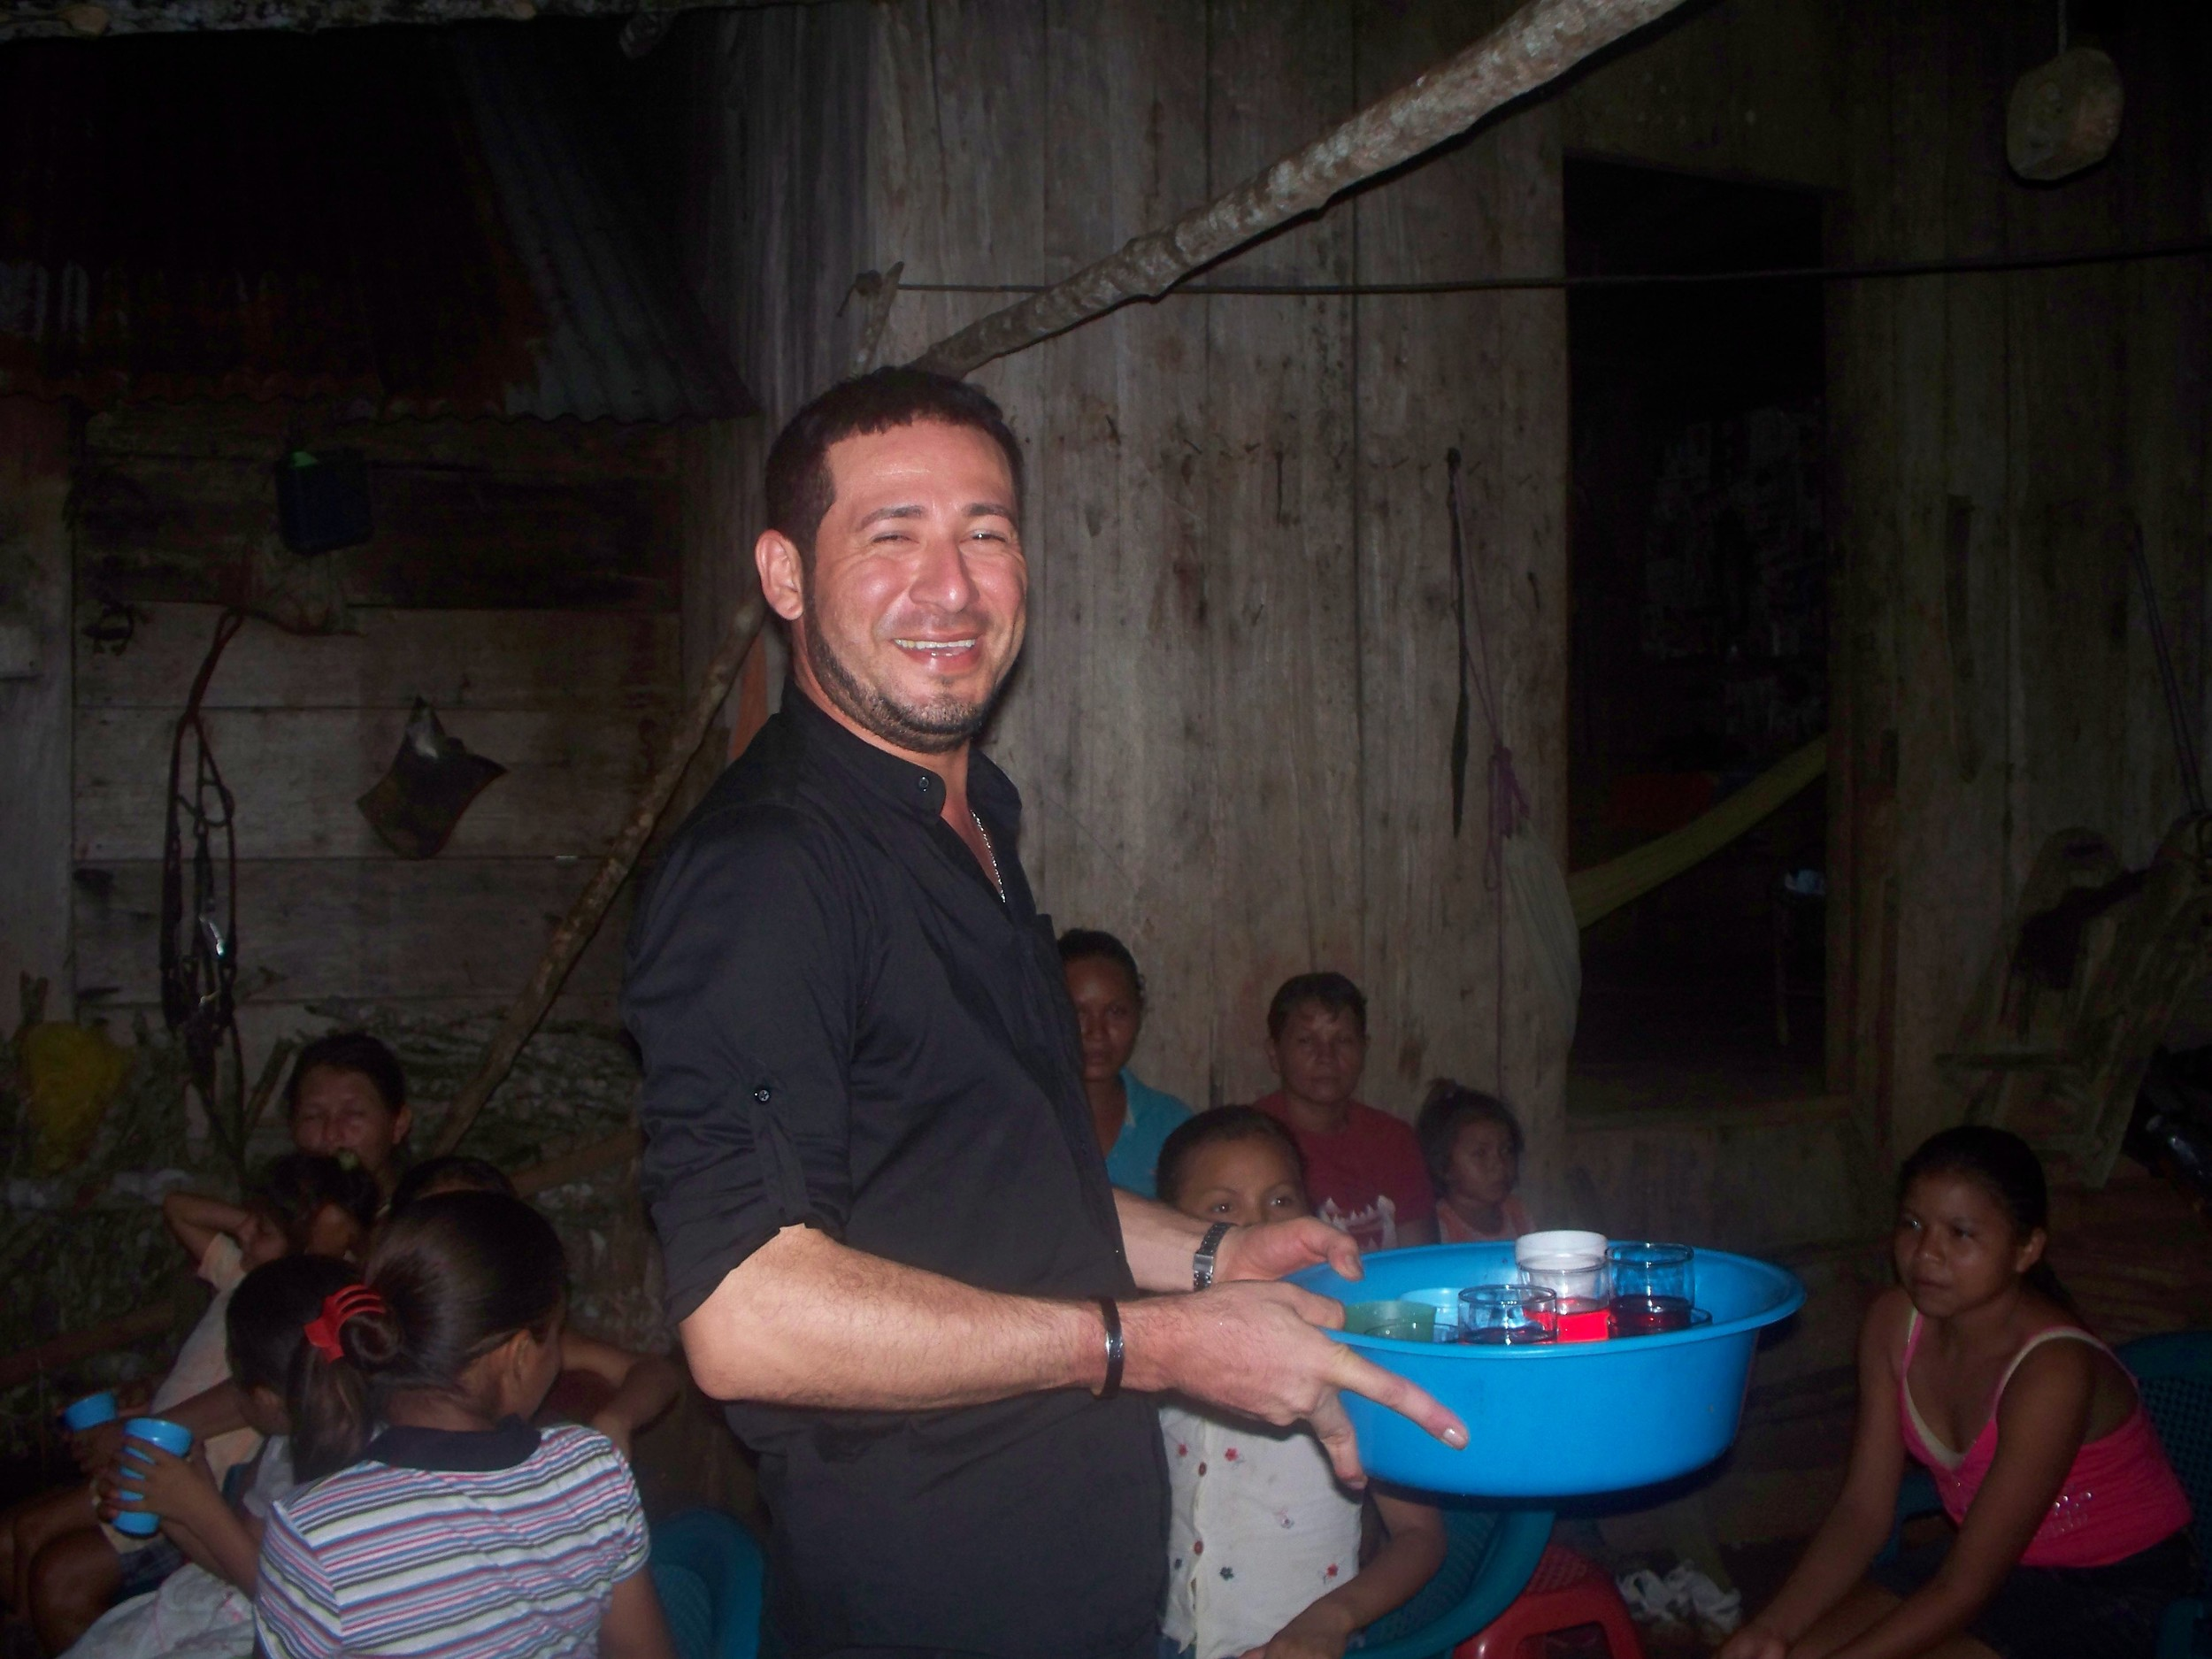 Juan Antonio reconnecting with his family and town in Angostura!